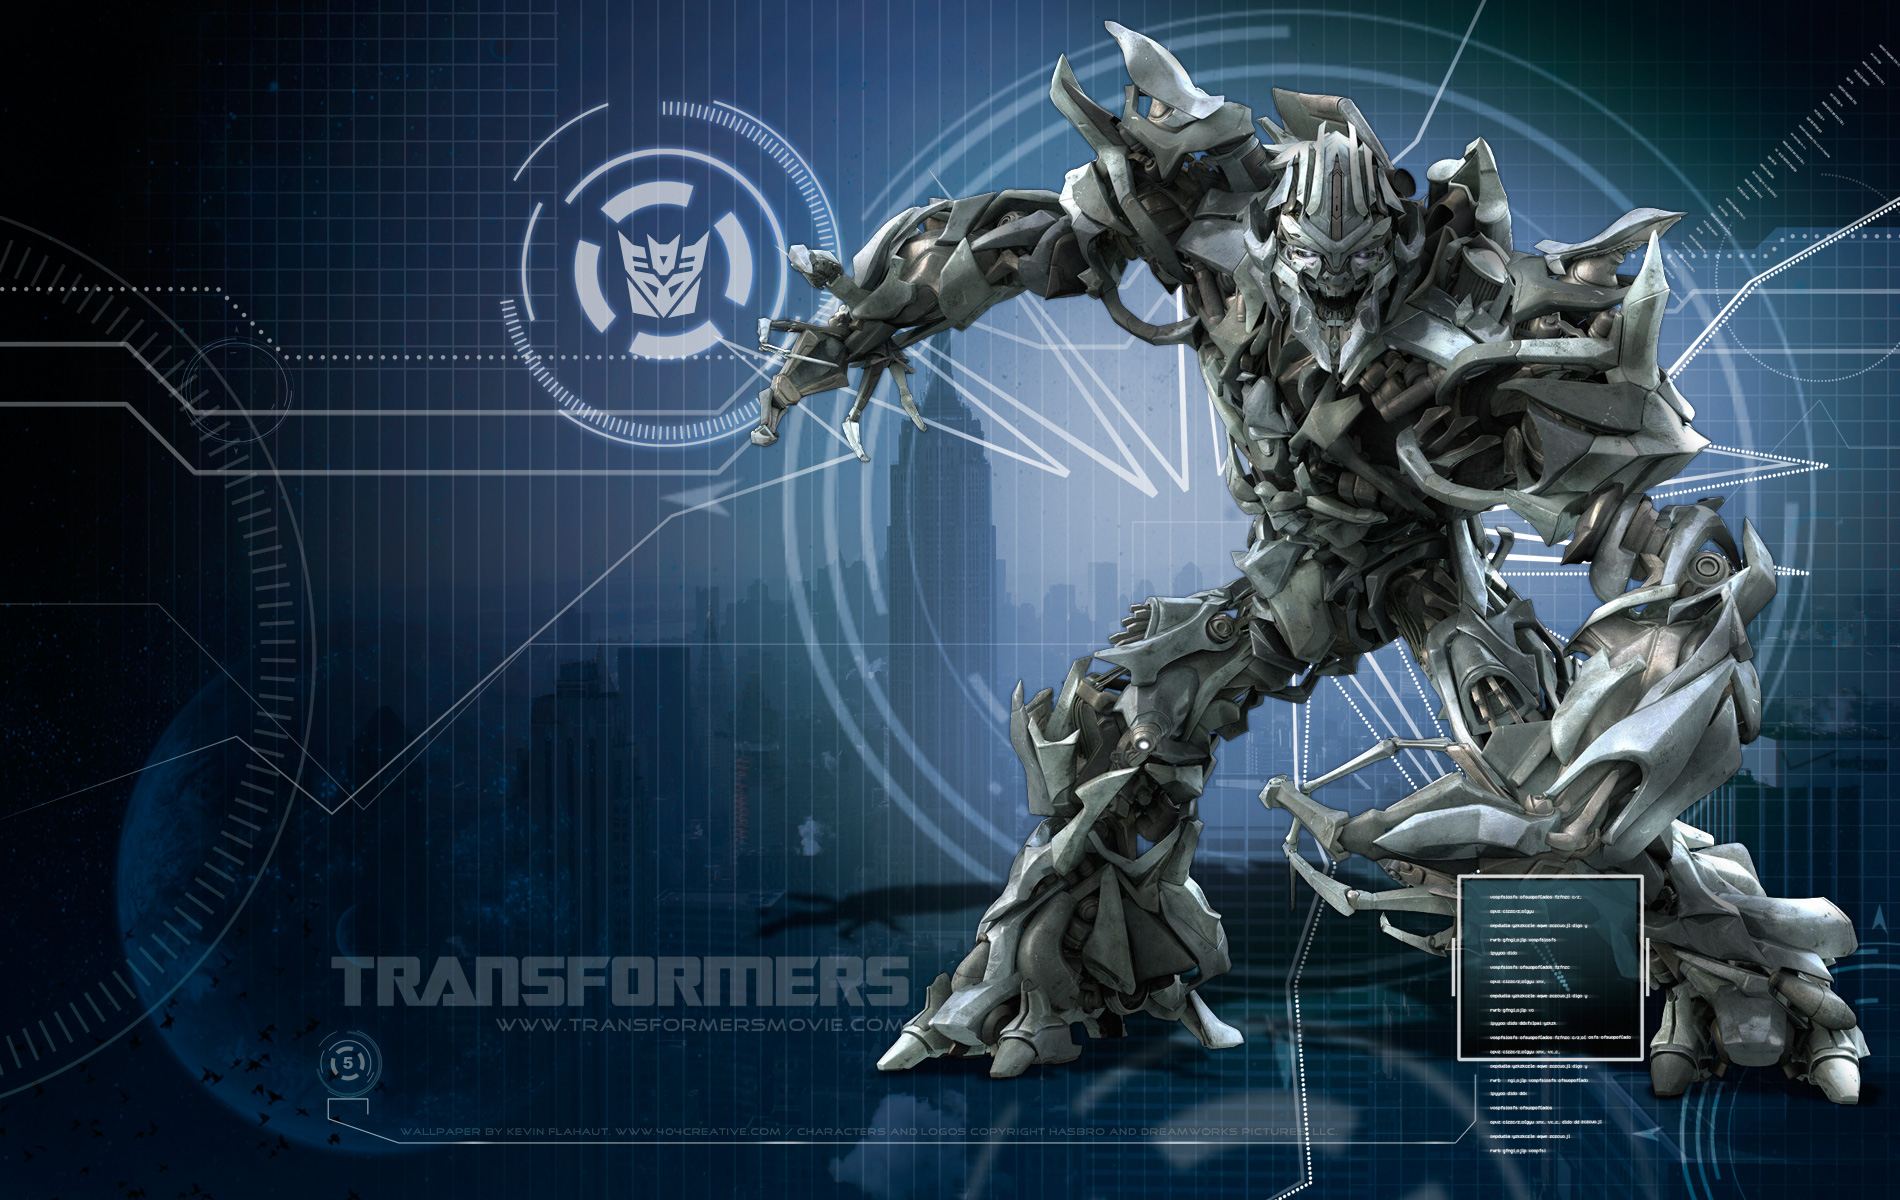 HD Transformers Wallpapers amp Backgrounds For Download 1900x1200